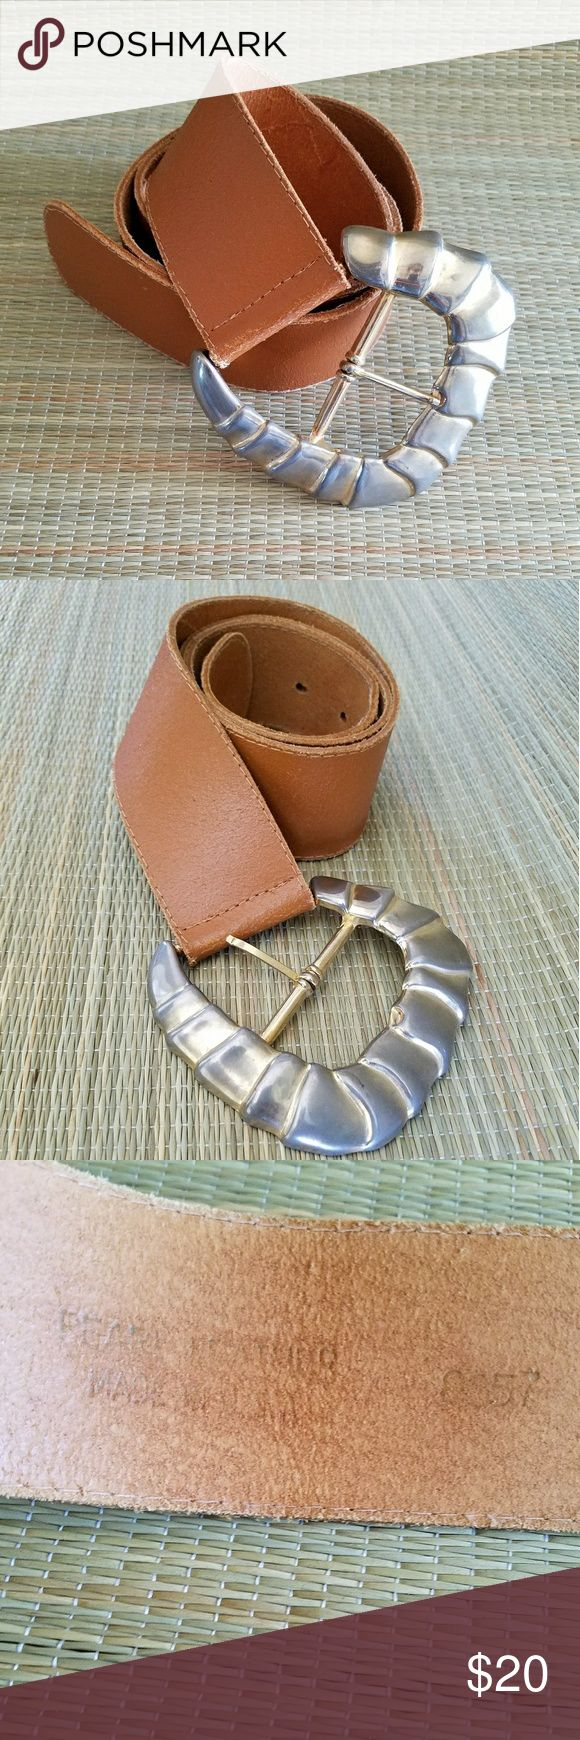 """Vtg 87 Pearl Tan Leather Slant Buckle Belt Tan leather belt with slanted gold tone buckle. Buckle has wear due to age. Three pre punched holes and adjusts from 29"""" to 31"""". MADE OF Genuine Leather Buckle measures 3.5"""" x 3"""" Pearl Accessories Belts"""